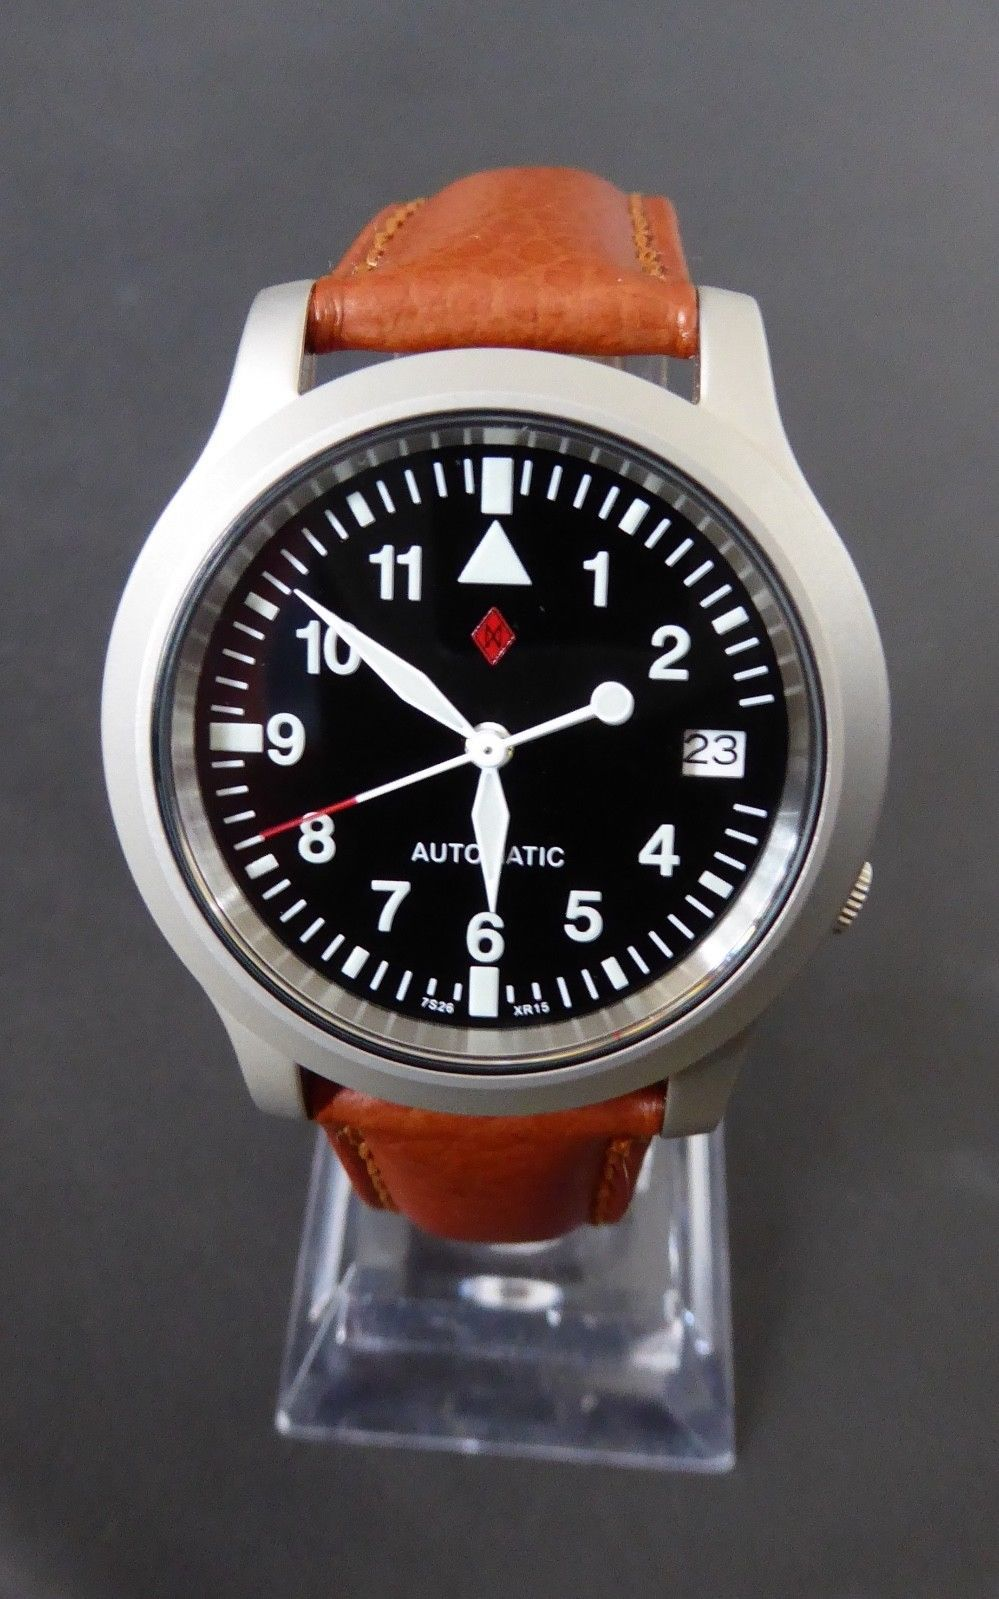 Seiko 5 Custom Mens Flieger Pilot Auto Watch Snk805 Brand New Uk Seller Ebay